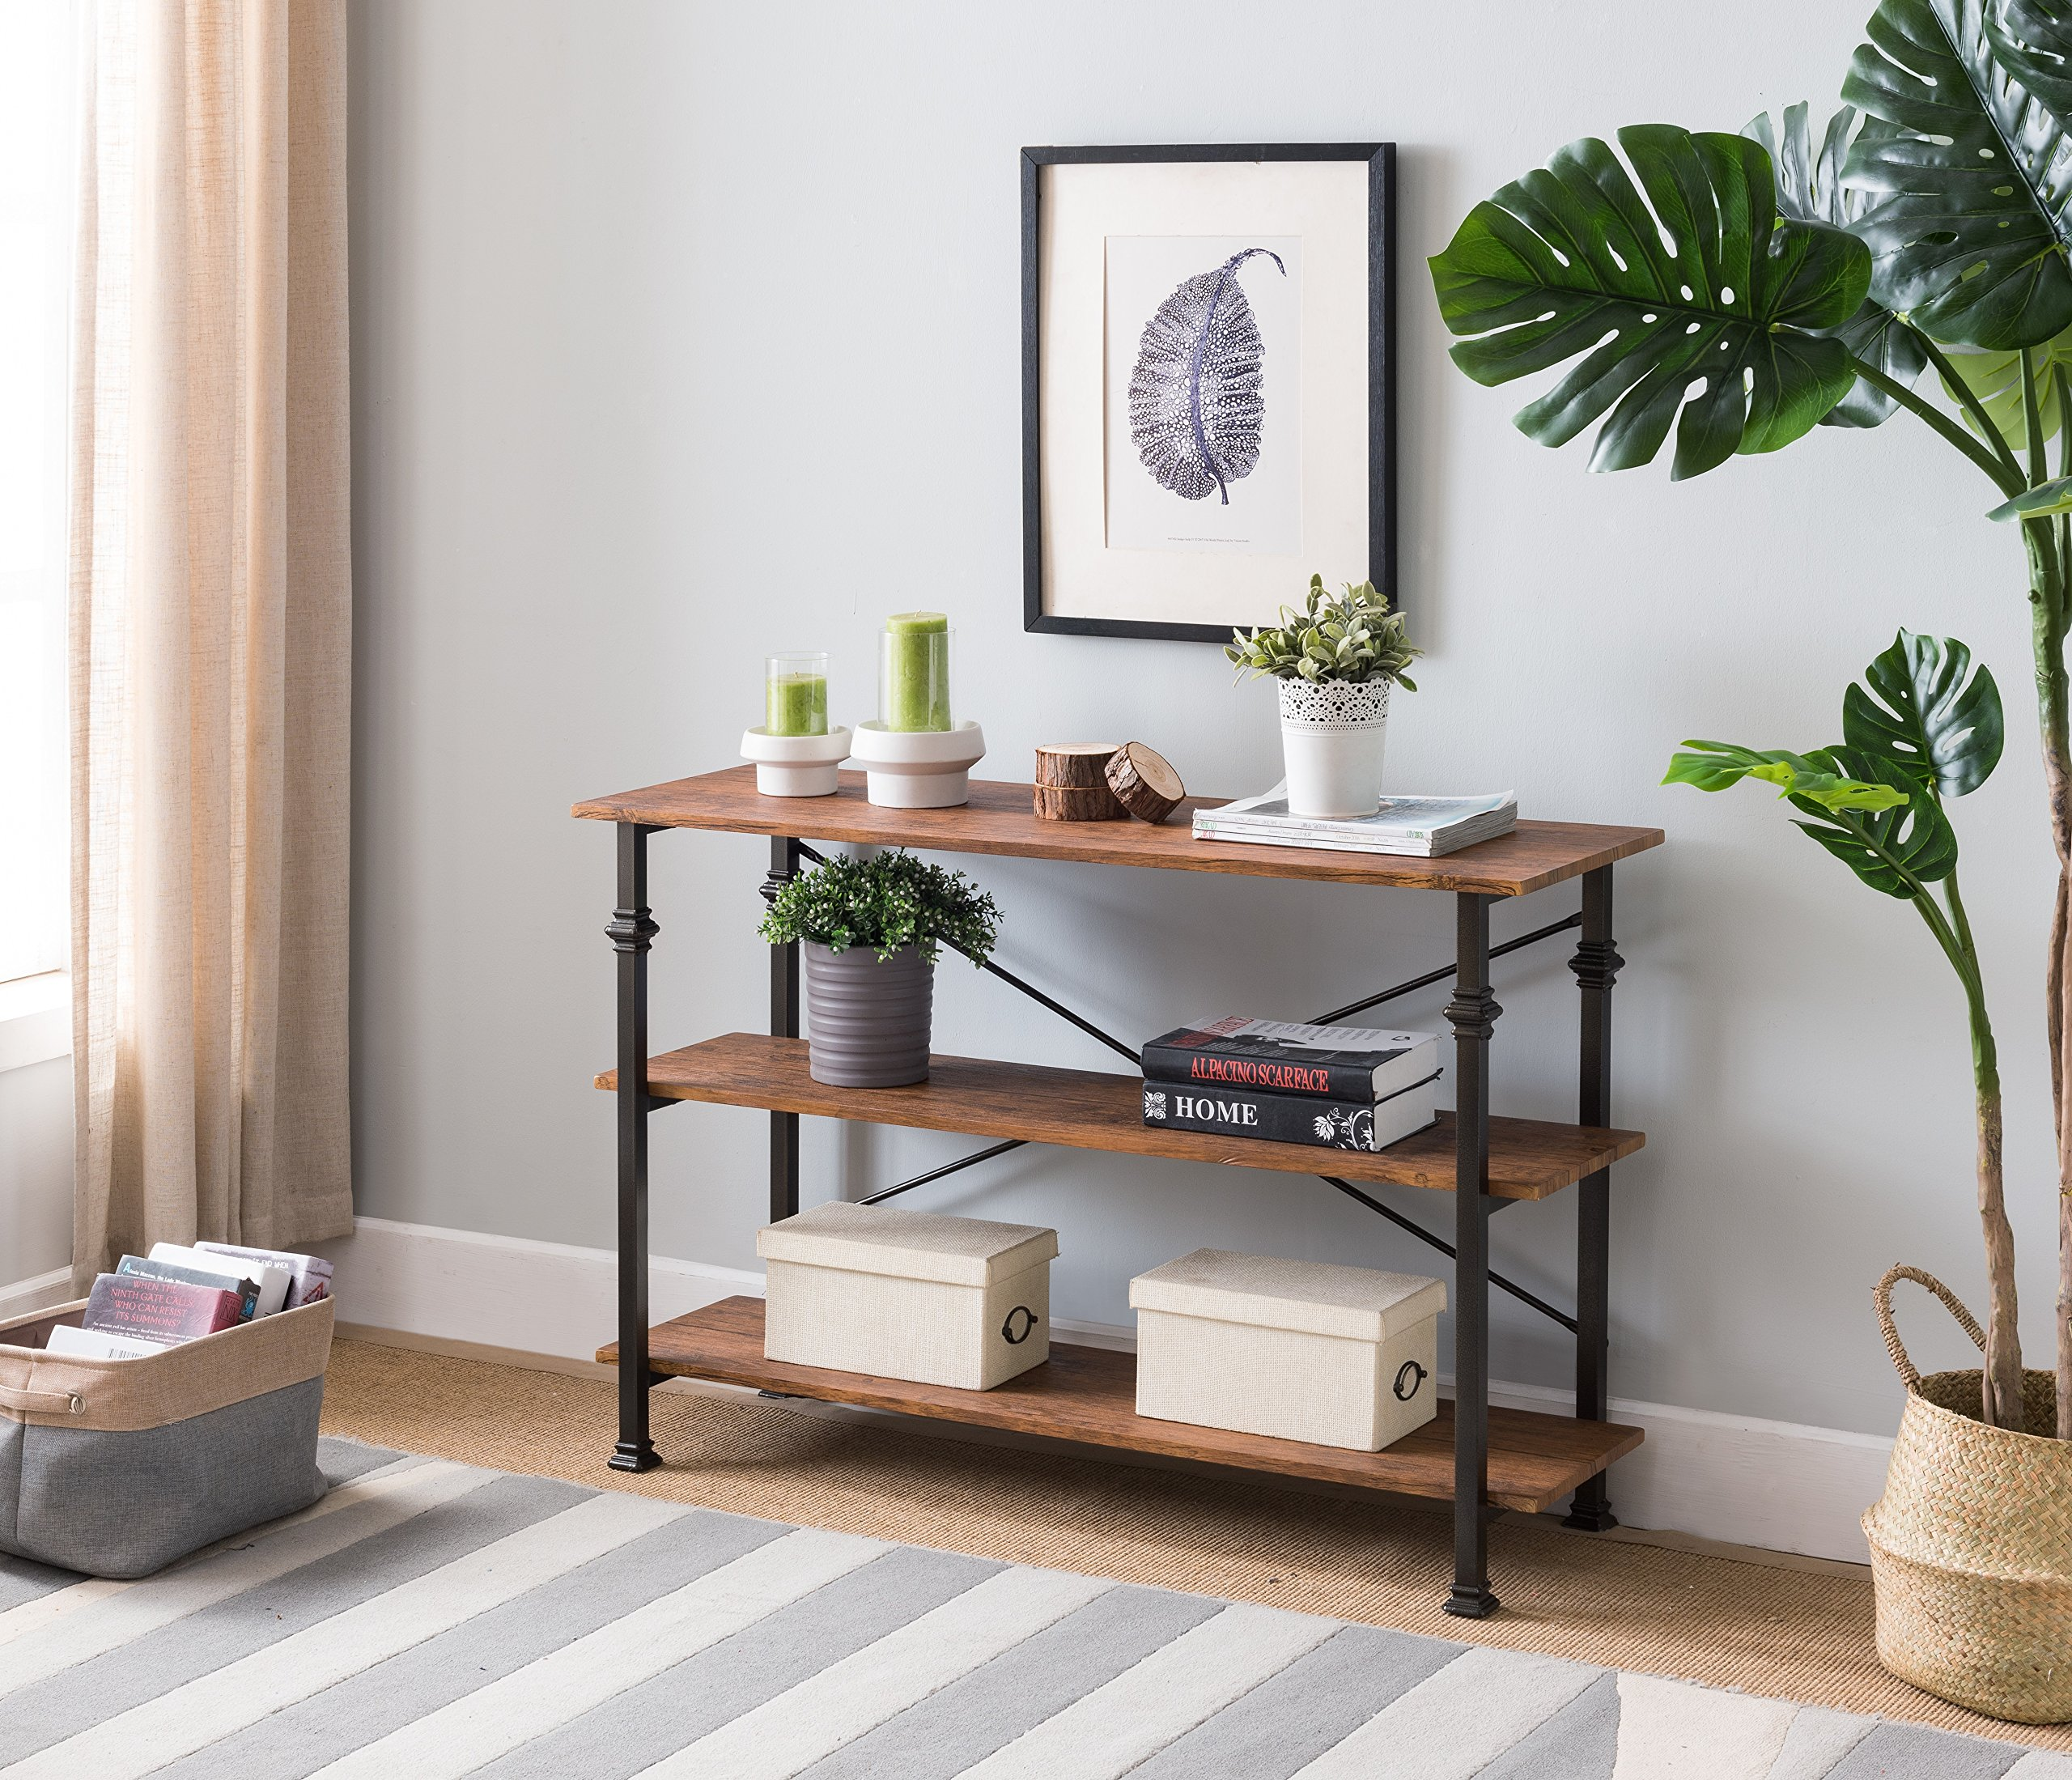 3-tier Vintage Brown/Metal Frame Industrial Style Console Sofa Table by eHomeProducts by eHomeProducts